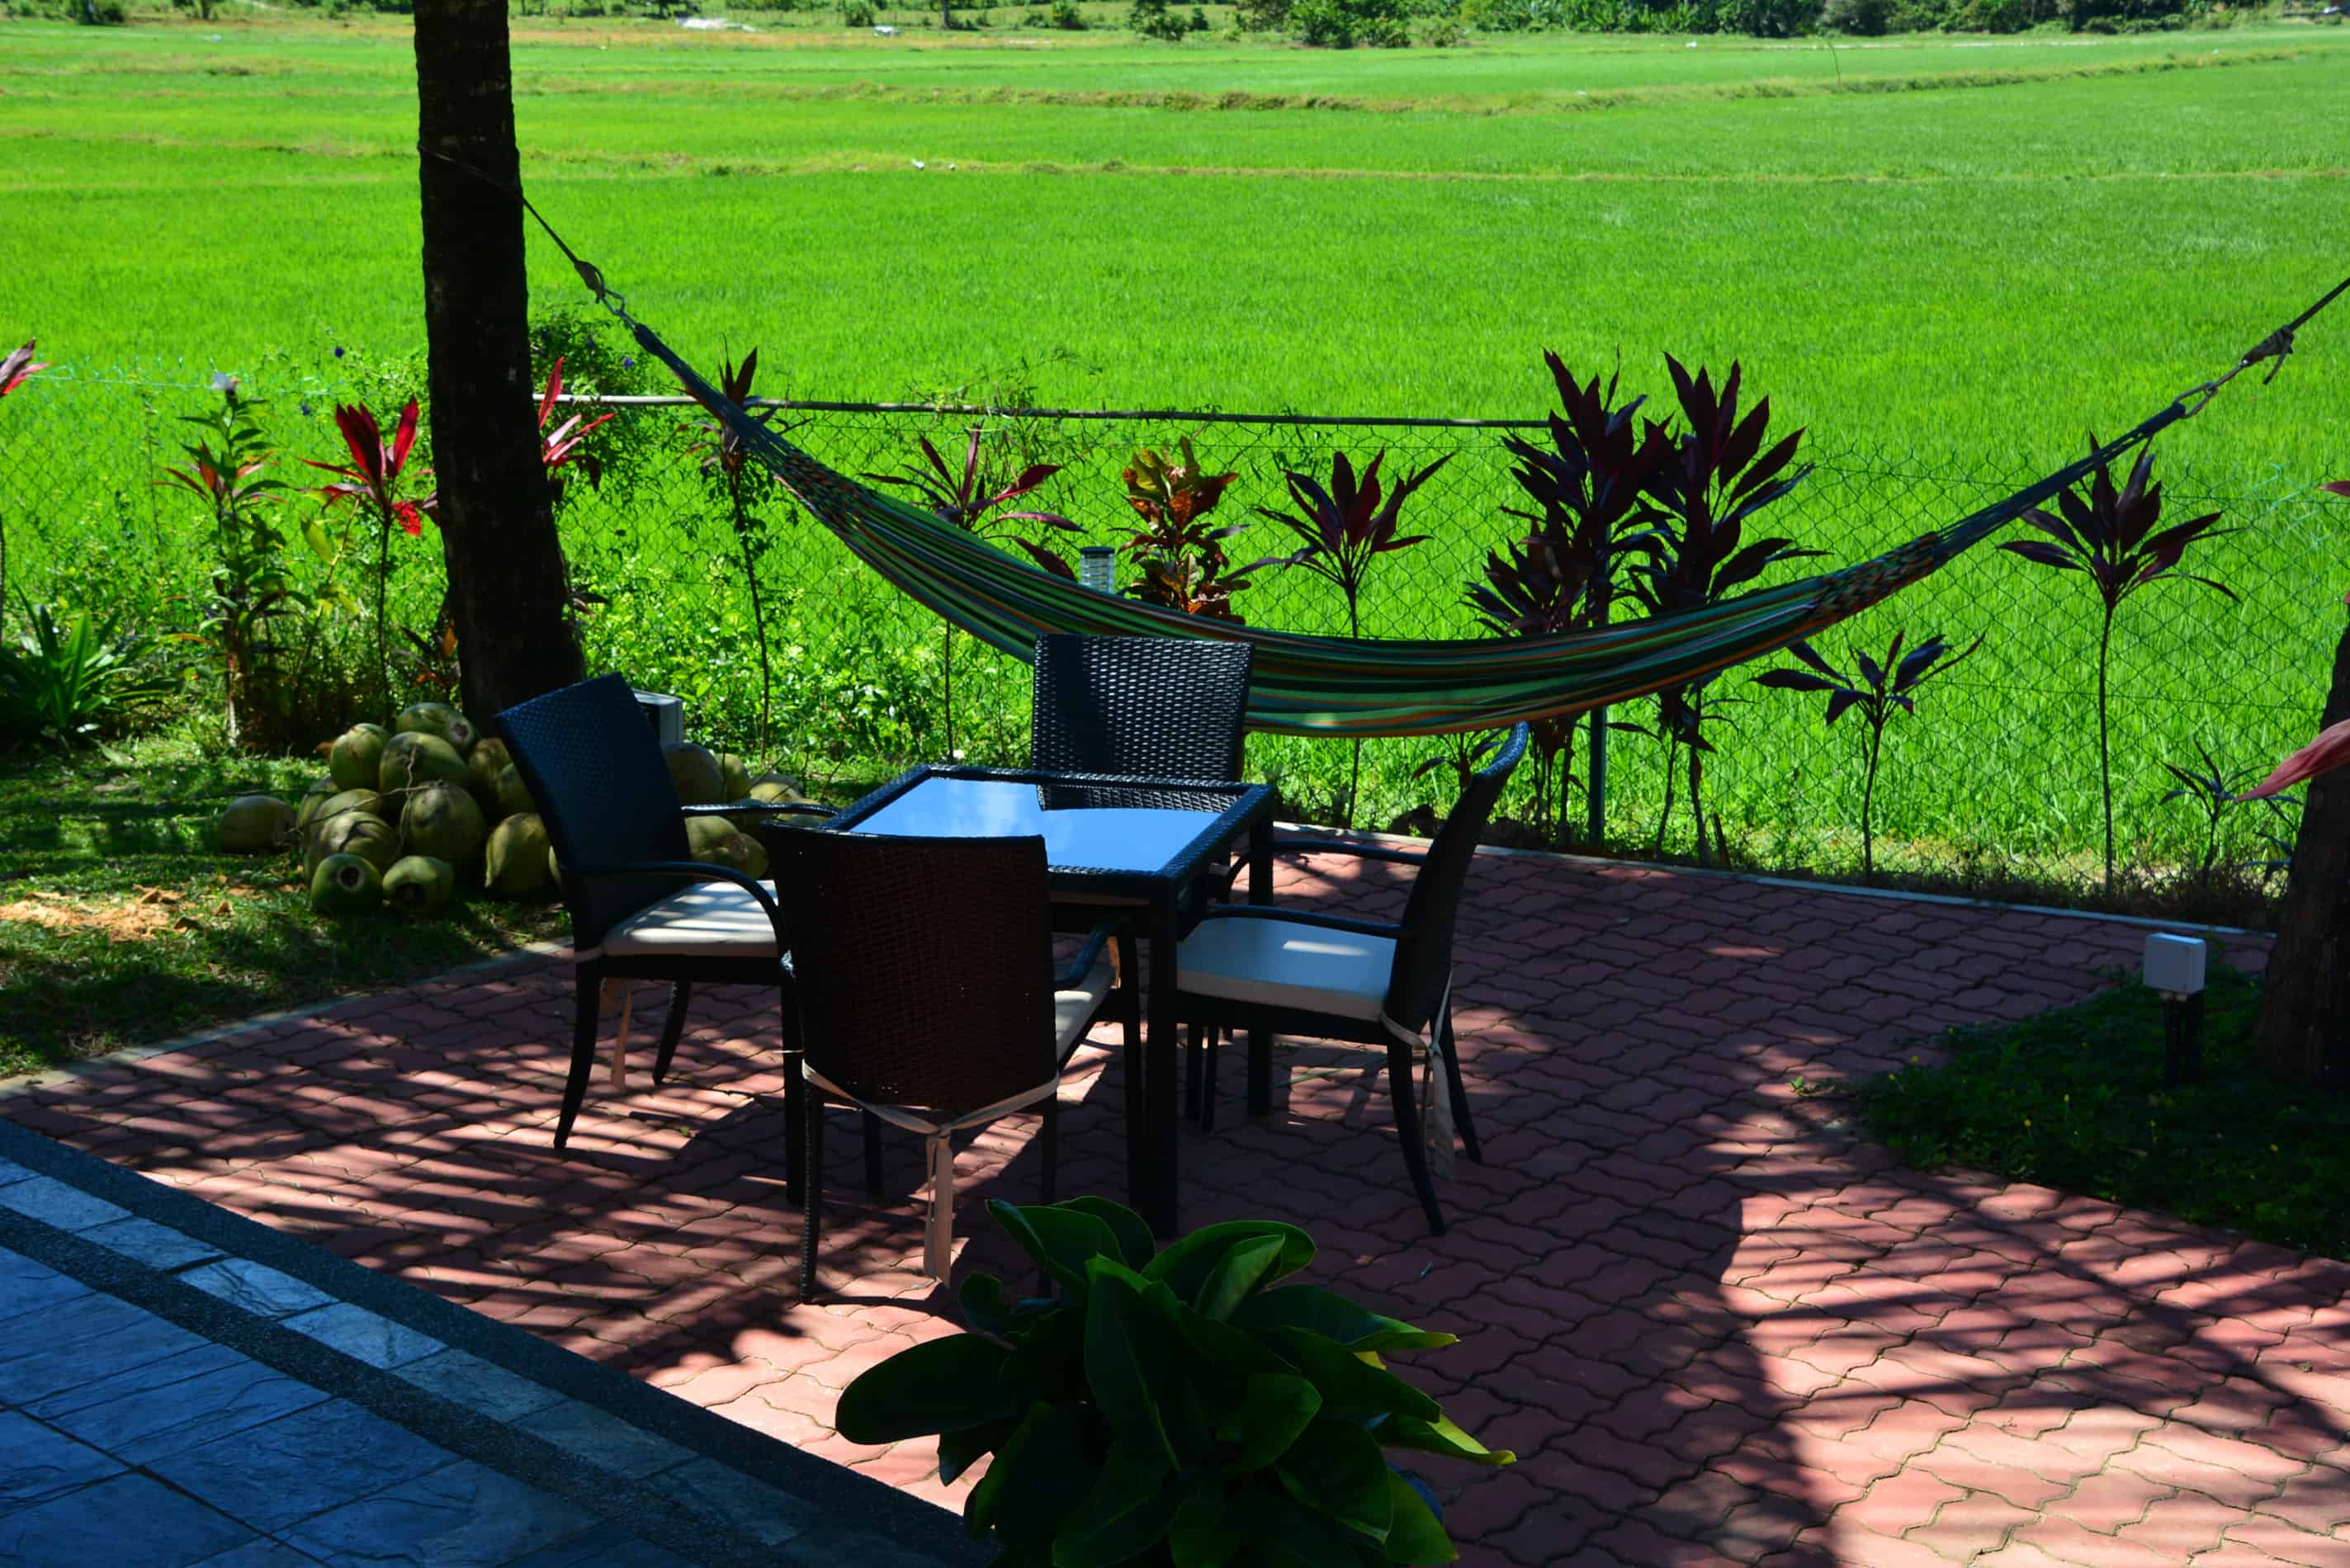 Sunset Valley - Dining area new pool and rice paddies